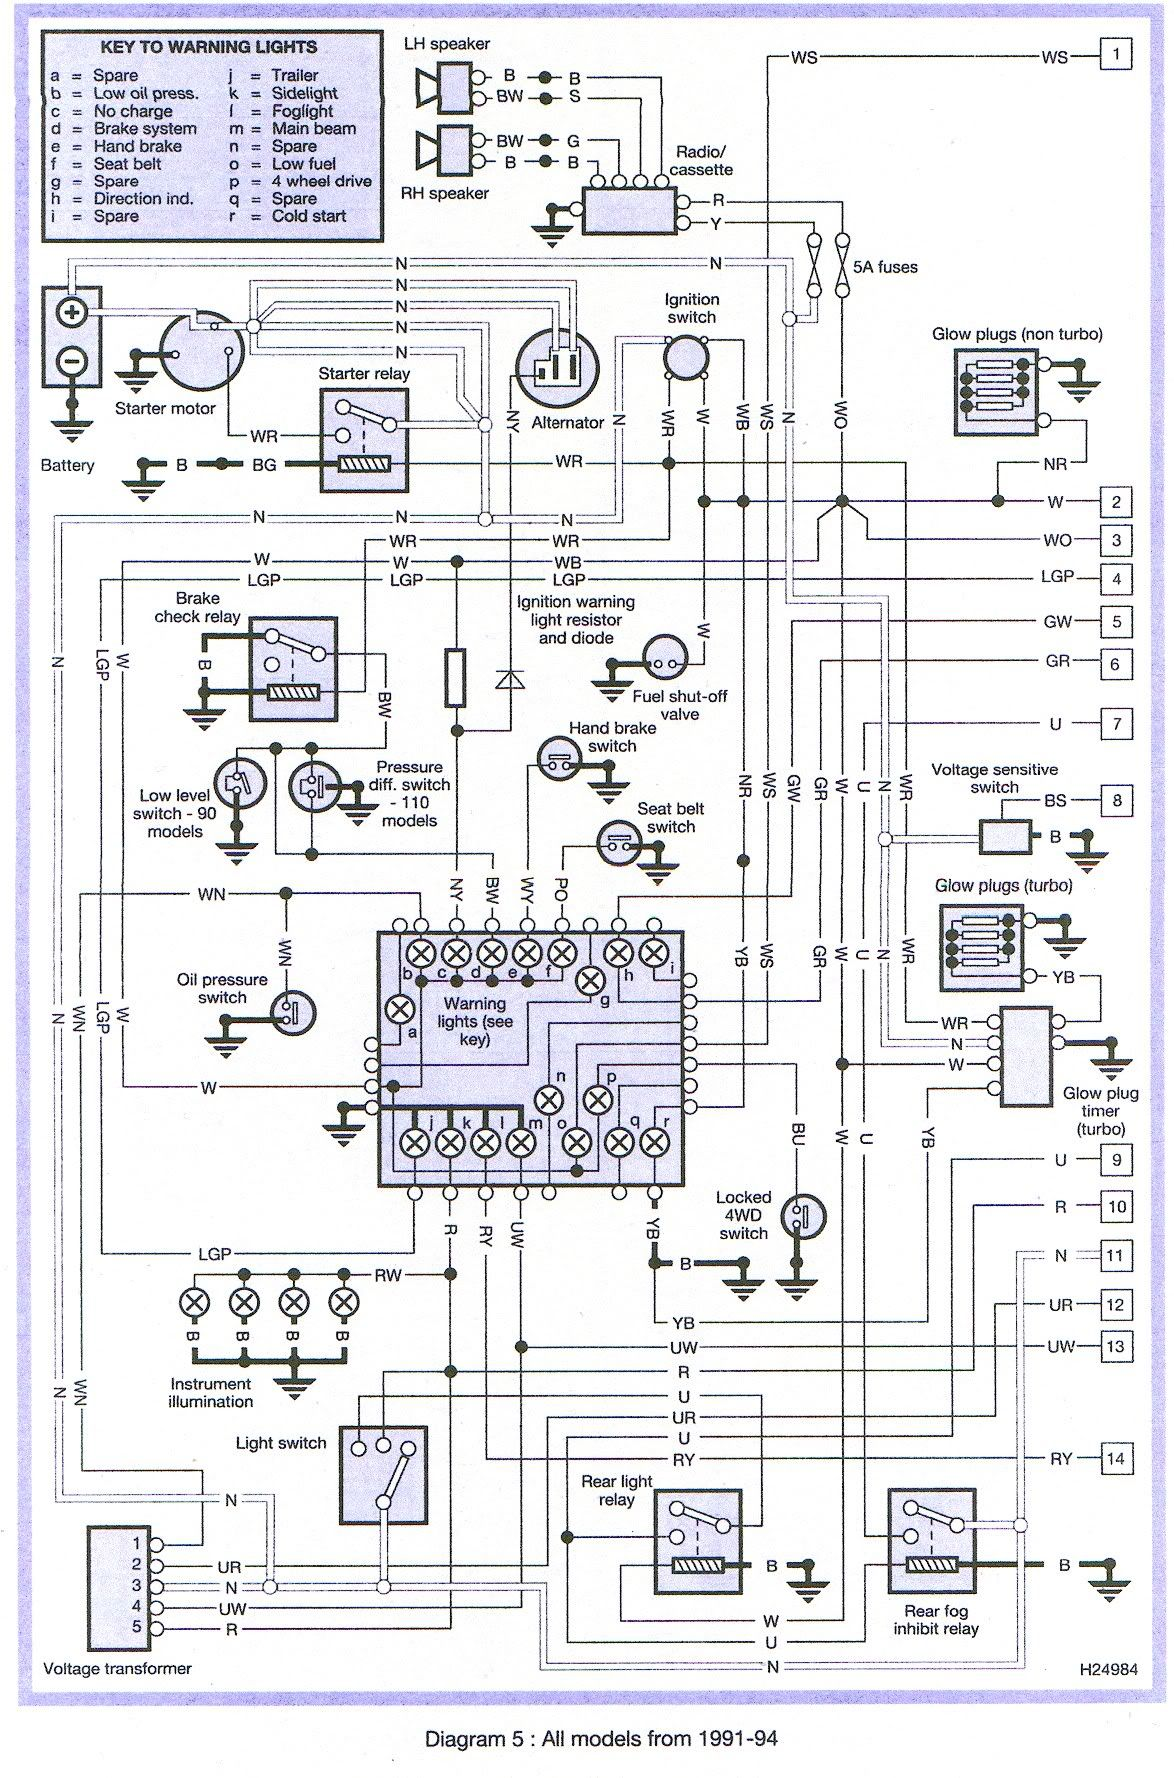 Land Rover Discovery Wiring Diagram Manual Repair With Engine Schematics Land Rover Discovery Rover Discovery Land Rover